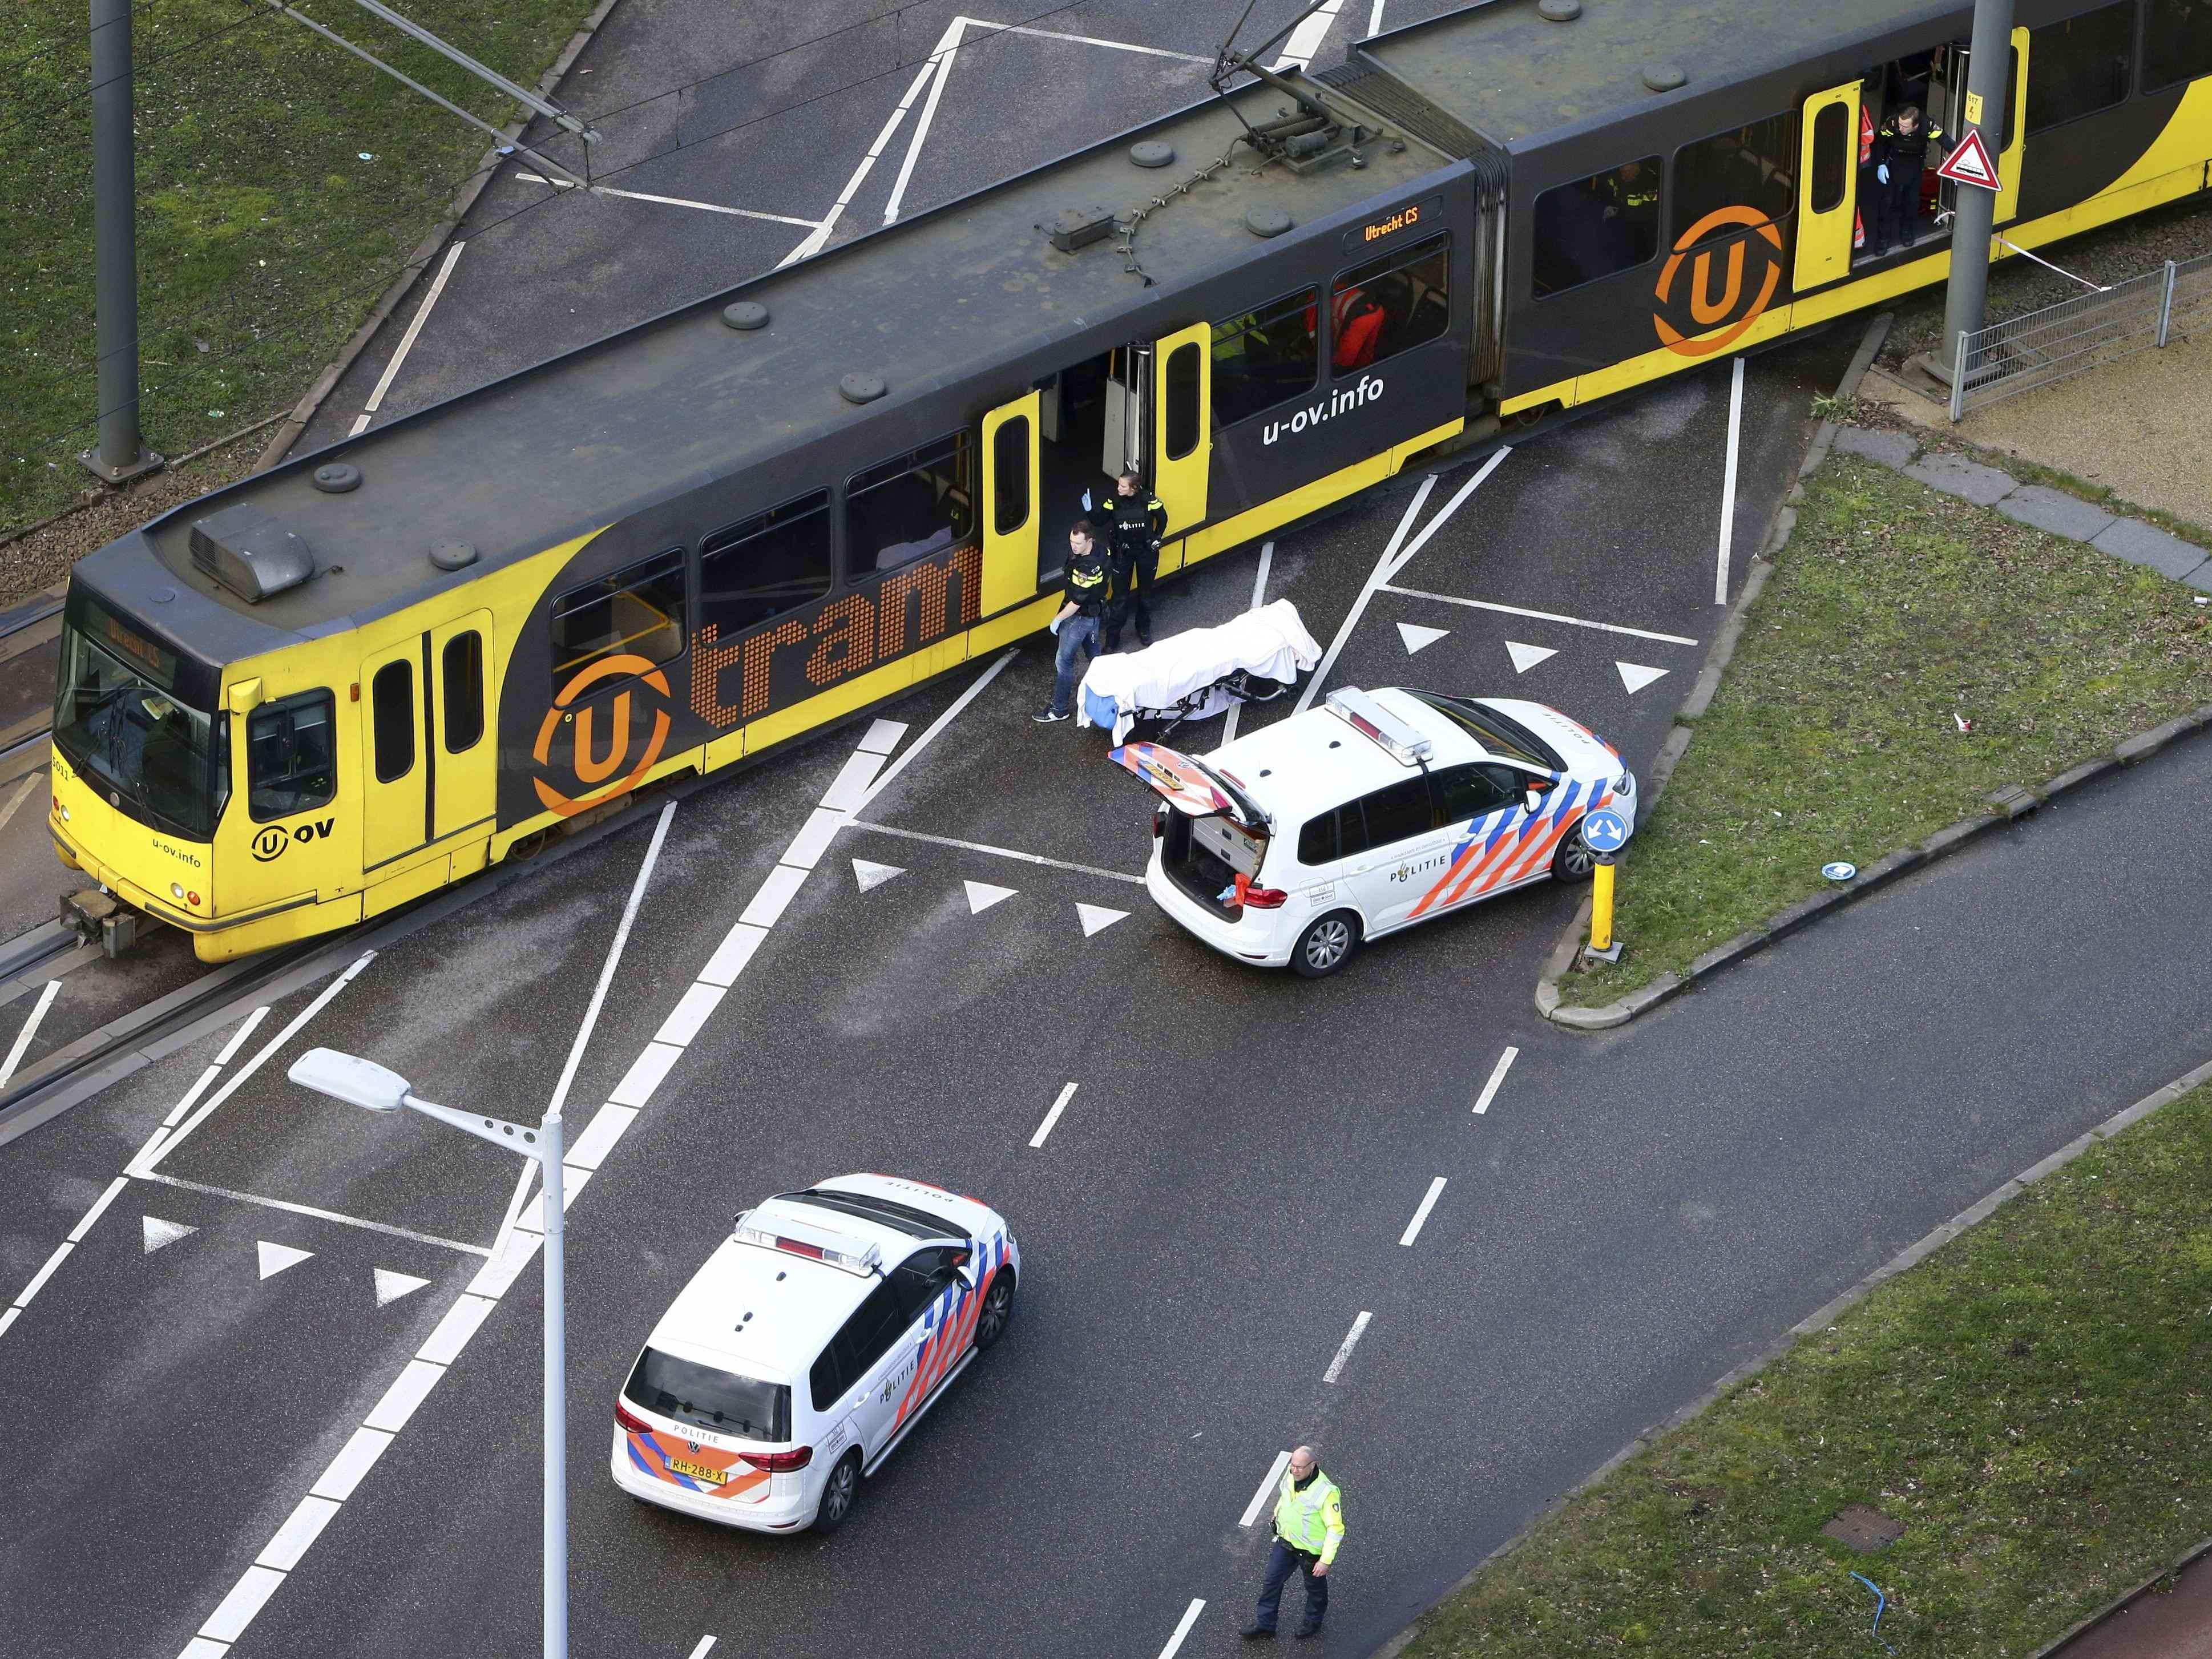 Special Police forces inspect a tram at the 24 Oktoberplace in Utrecht, on March 18, 2019 where a shooting took place.